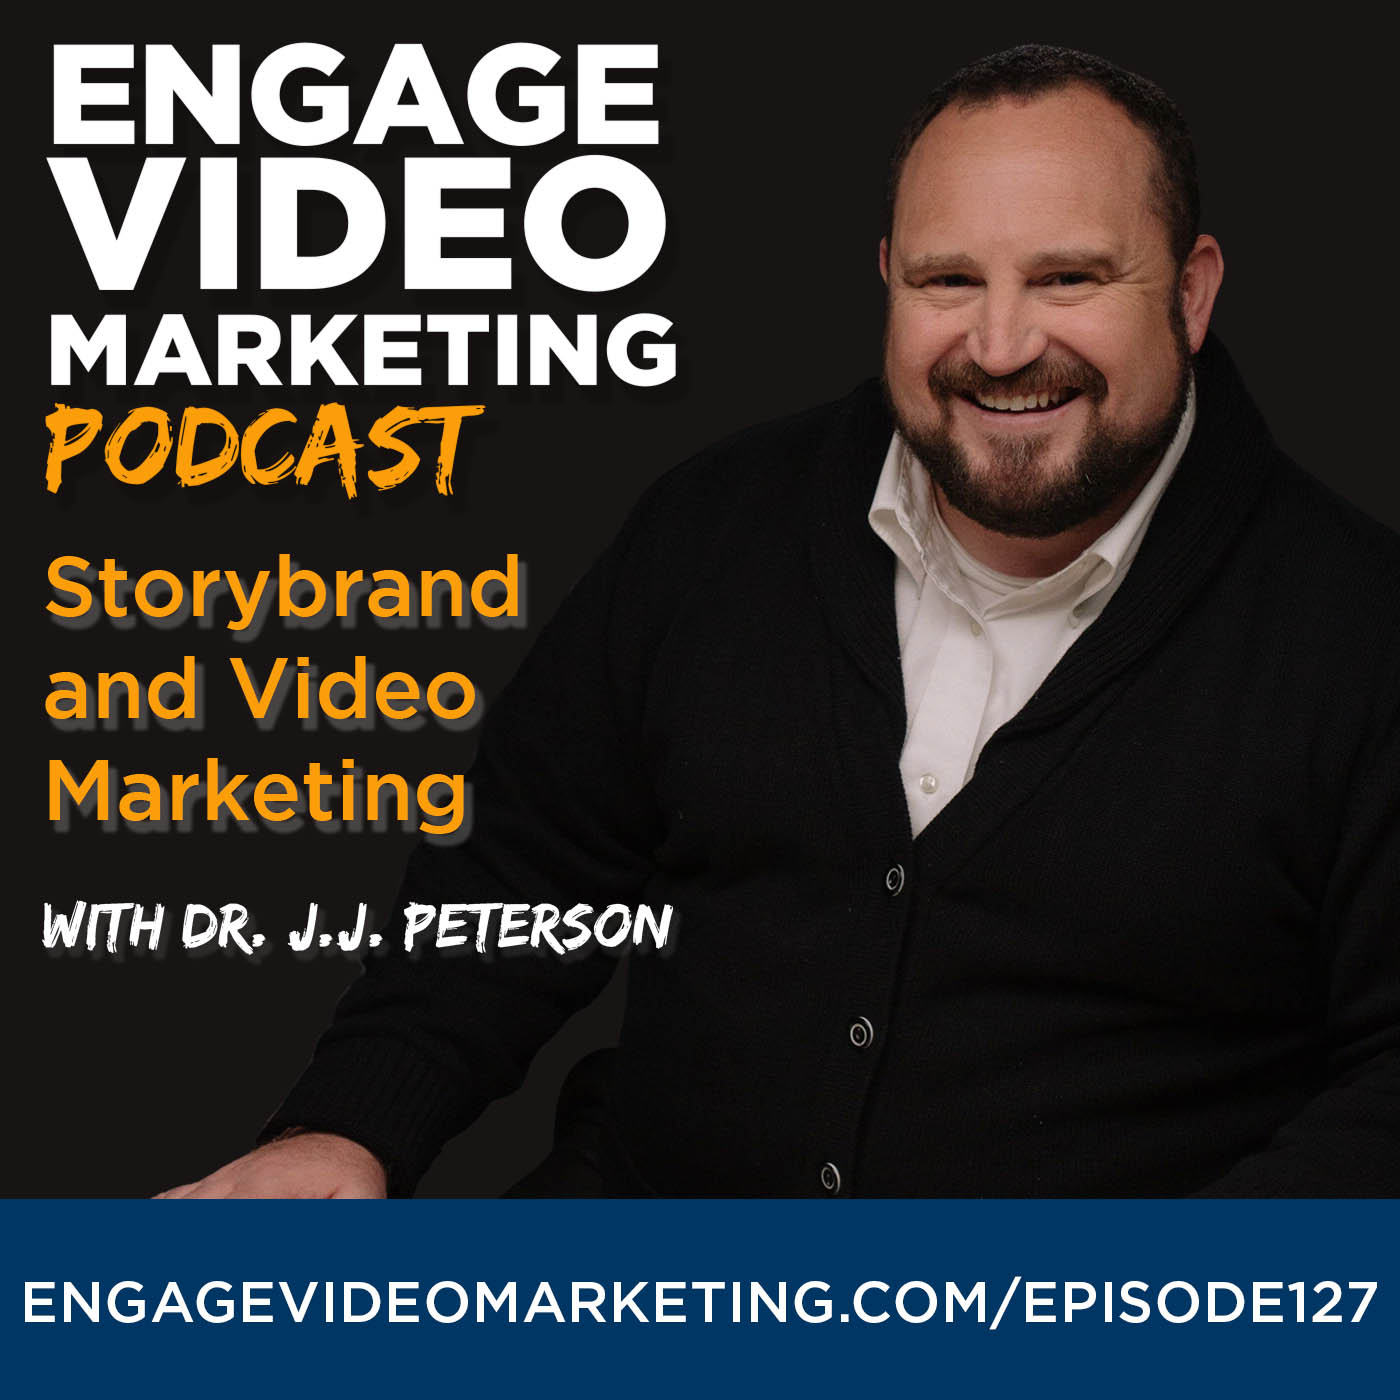 Storybrand and Video Marketing with Dr JJ Peterson